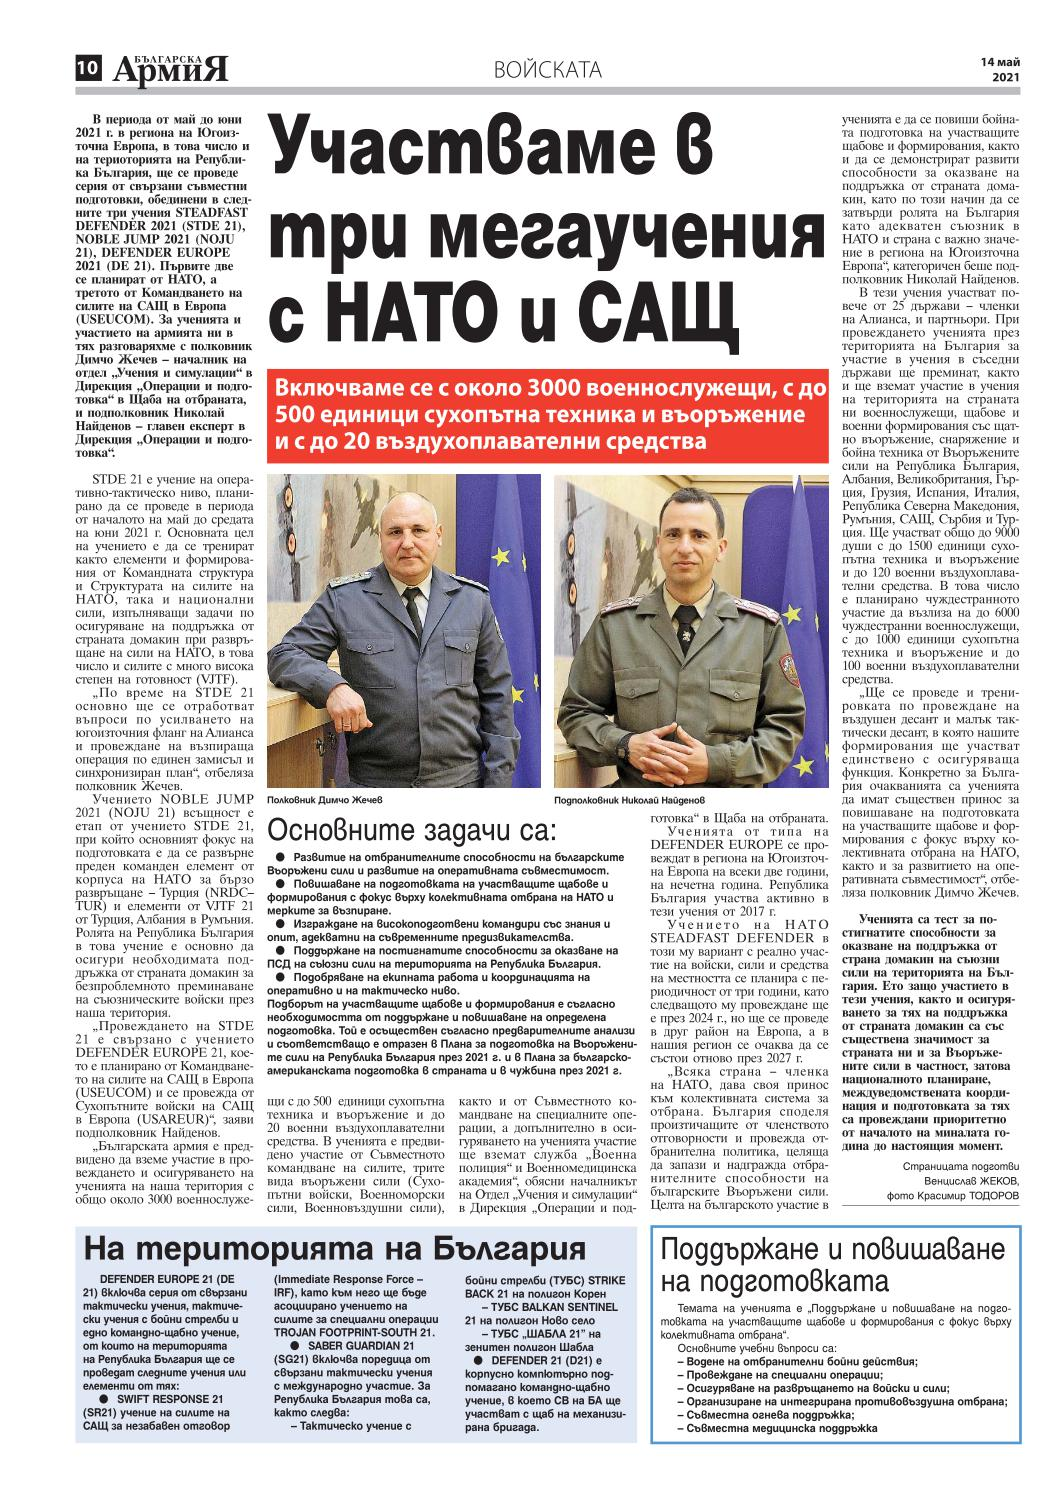 https://armymedia.bg/wp-content/uploads/2021/05/10.page1_-1.jpg